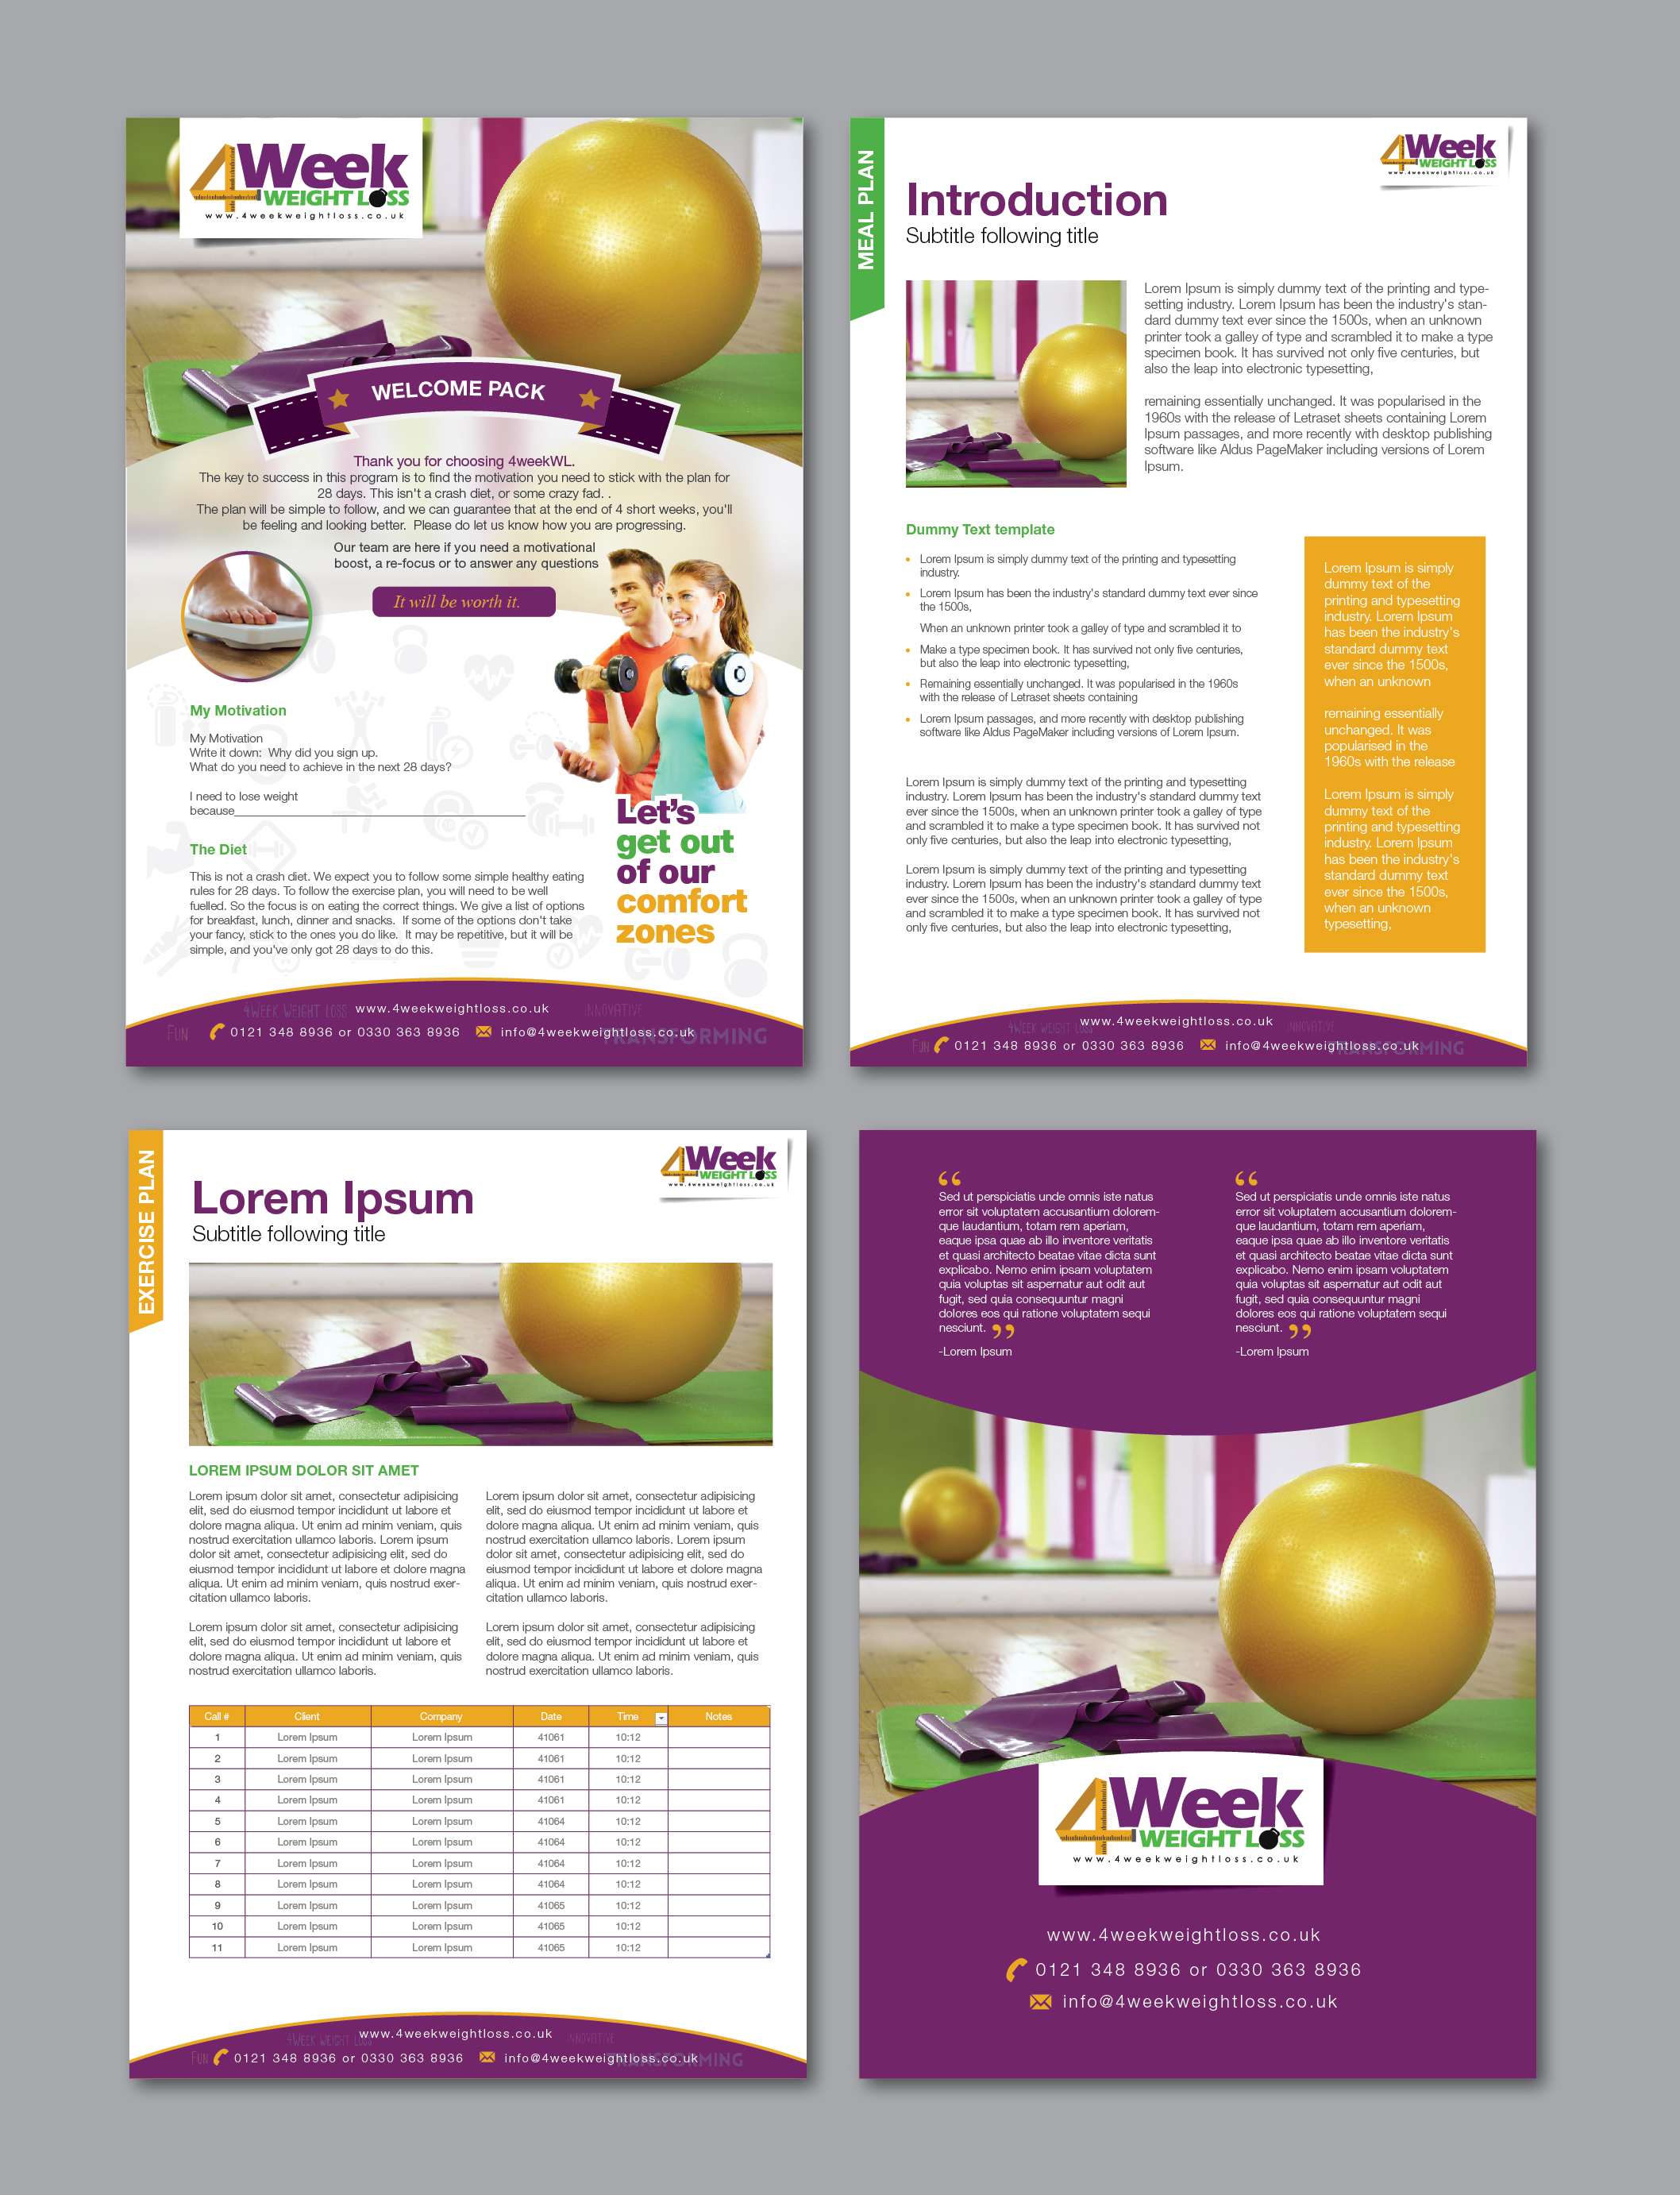 eBook / Brochure template for www.4weekweightloss.co.uk - Health